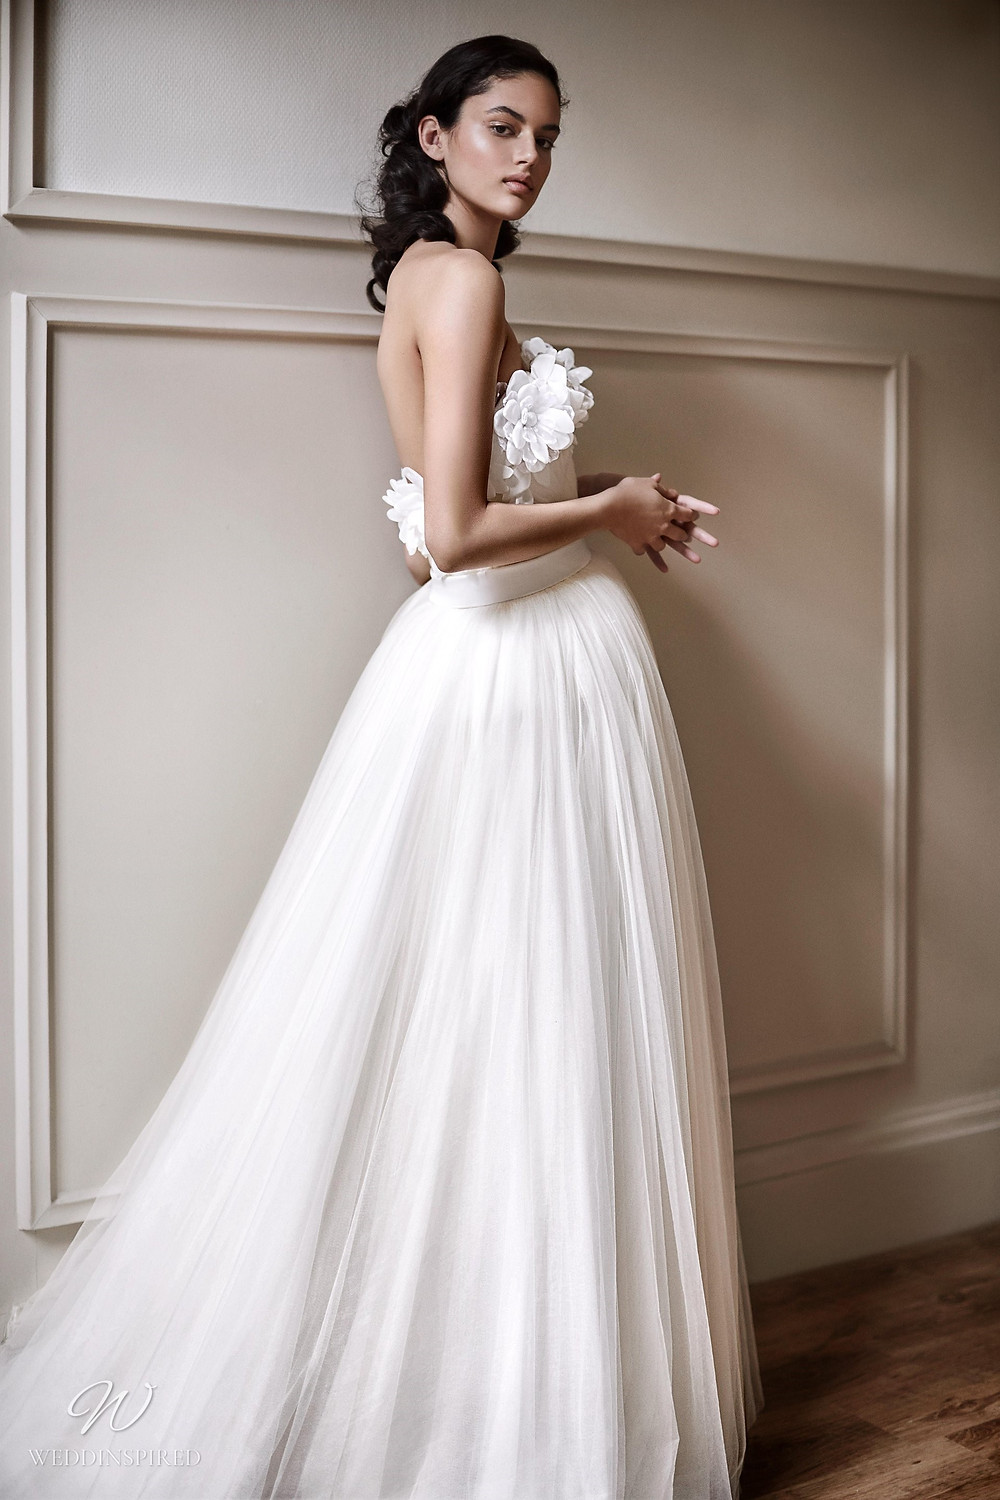 A Viktor & Rolf 2021 strapless princess ball gown wedding dress with chiffon skirt and flowers